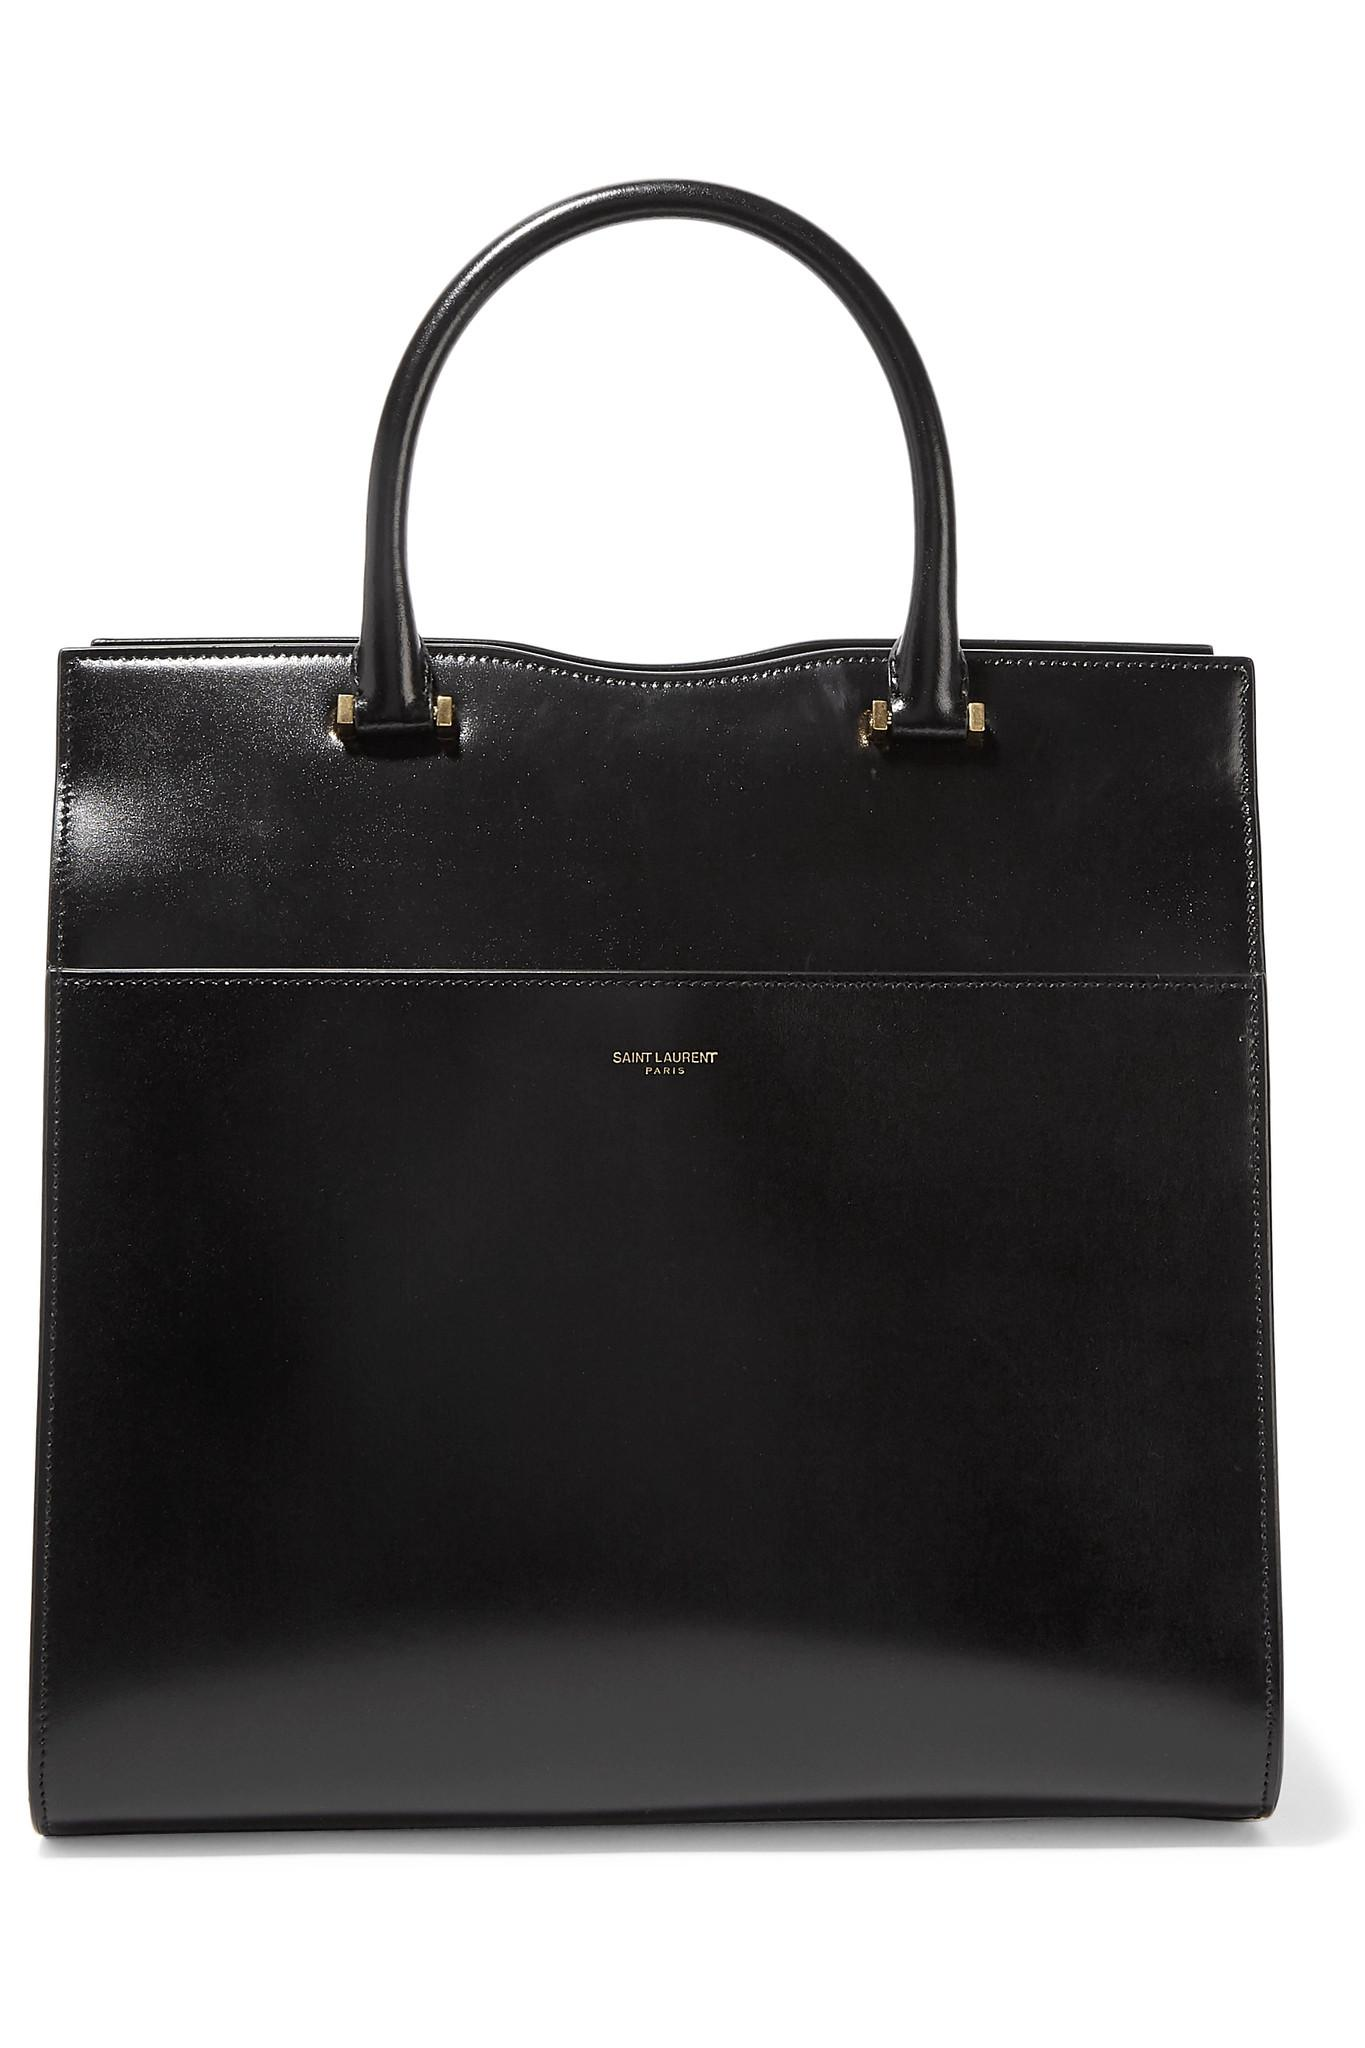 b8b2181cc4c2 Saint Laurent Cabas Uptown Glossed-leather Tote in Black - Lyst